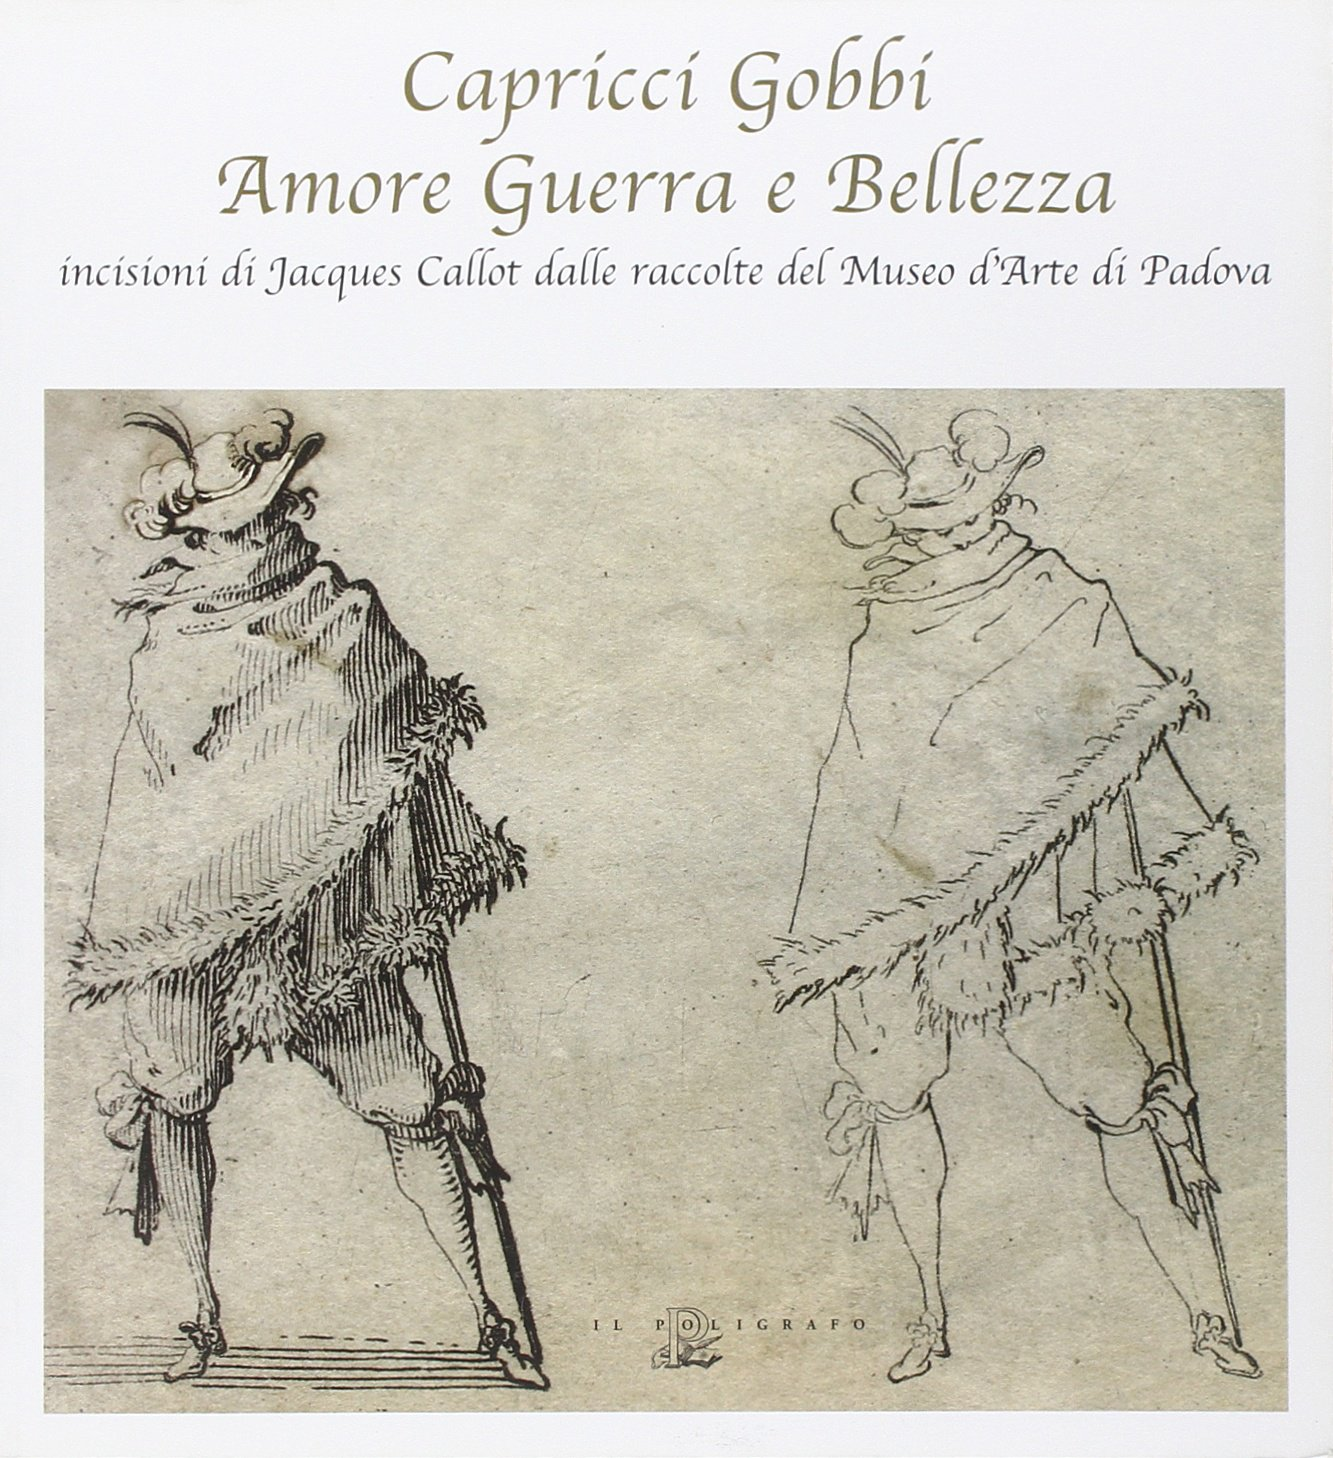 CAPRICCI, GOBBI, AMORE, GUERRA E BELLEZA: INCISIONI DI JACQUES CALLOT DALLE RACCOLTE DEL MUSEO D'ARTE DI PADOVA (Whims, Hunchbacks, Love, War and Beauty: Prints by Jacques Callot from the Collection of the Museo D'Arte in Padua) ebook